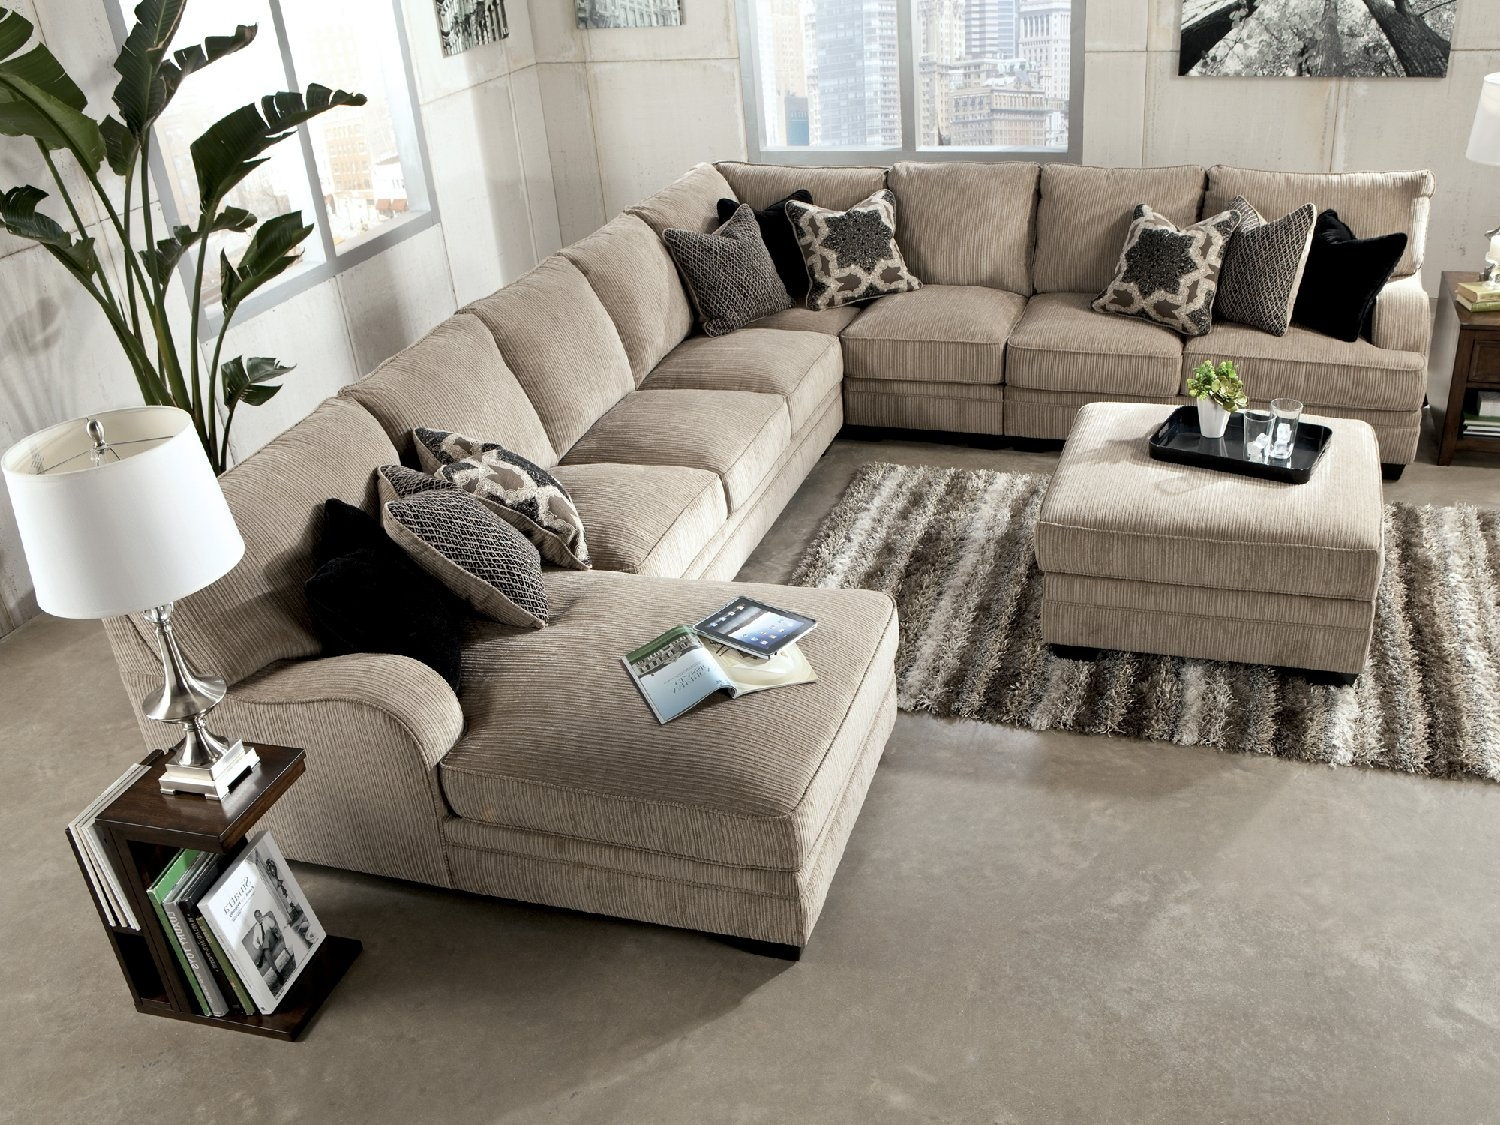 Fancy Sectional Sofas Mn 36 On Contemporary Sofa Inspiration With Intended For Mn Sectional Sofas (View 10 of 10)